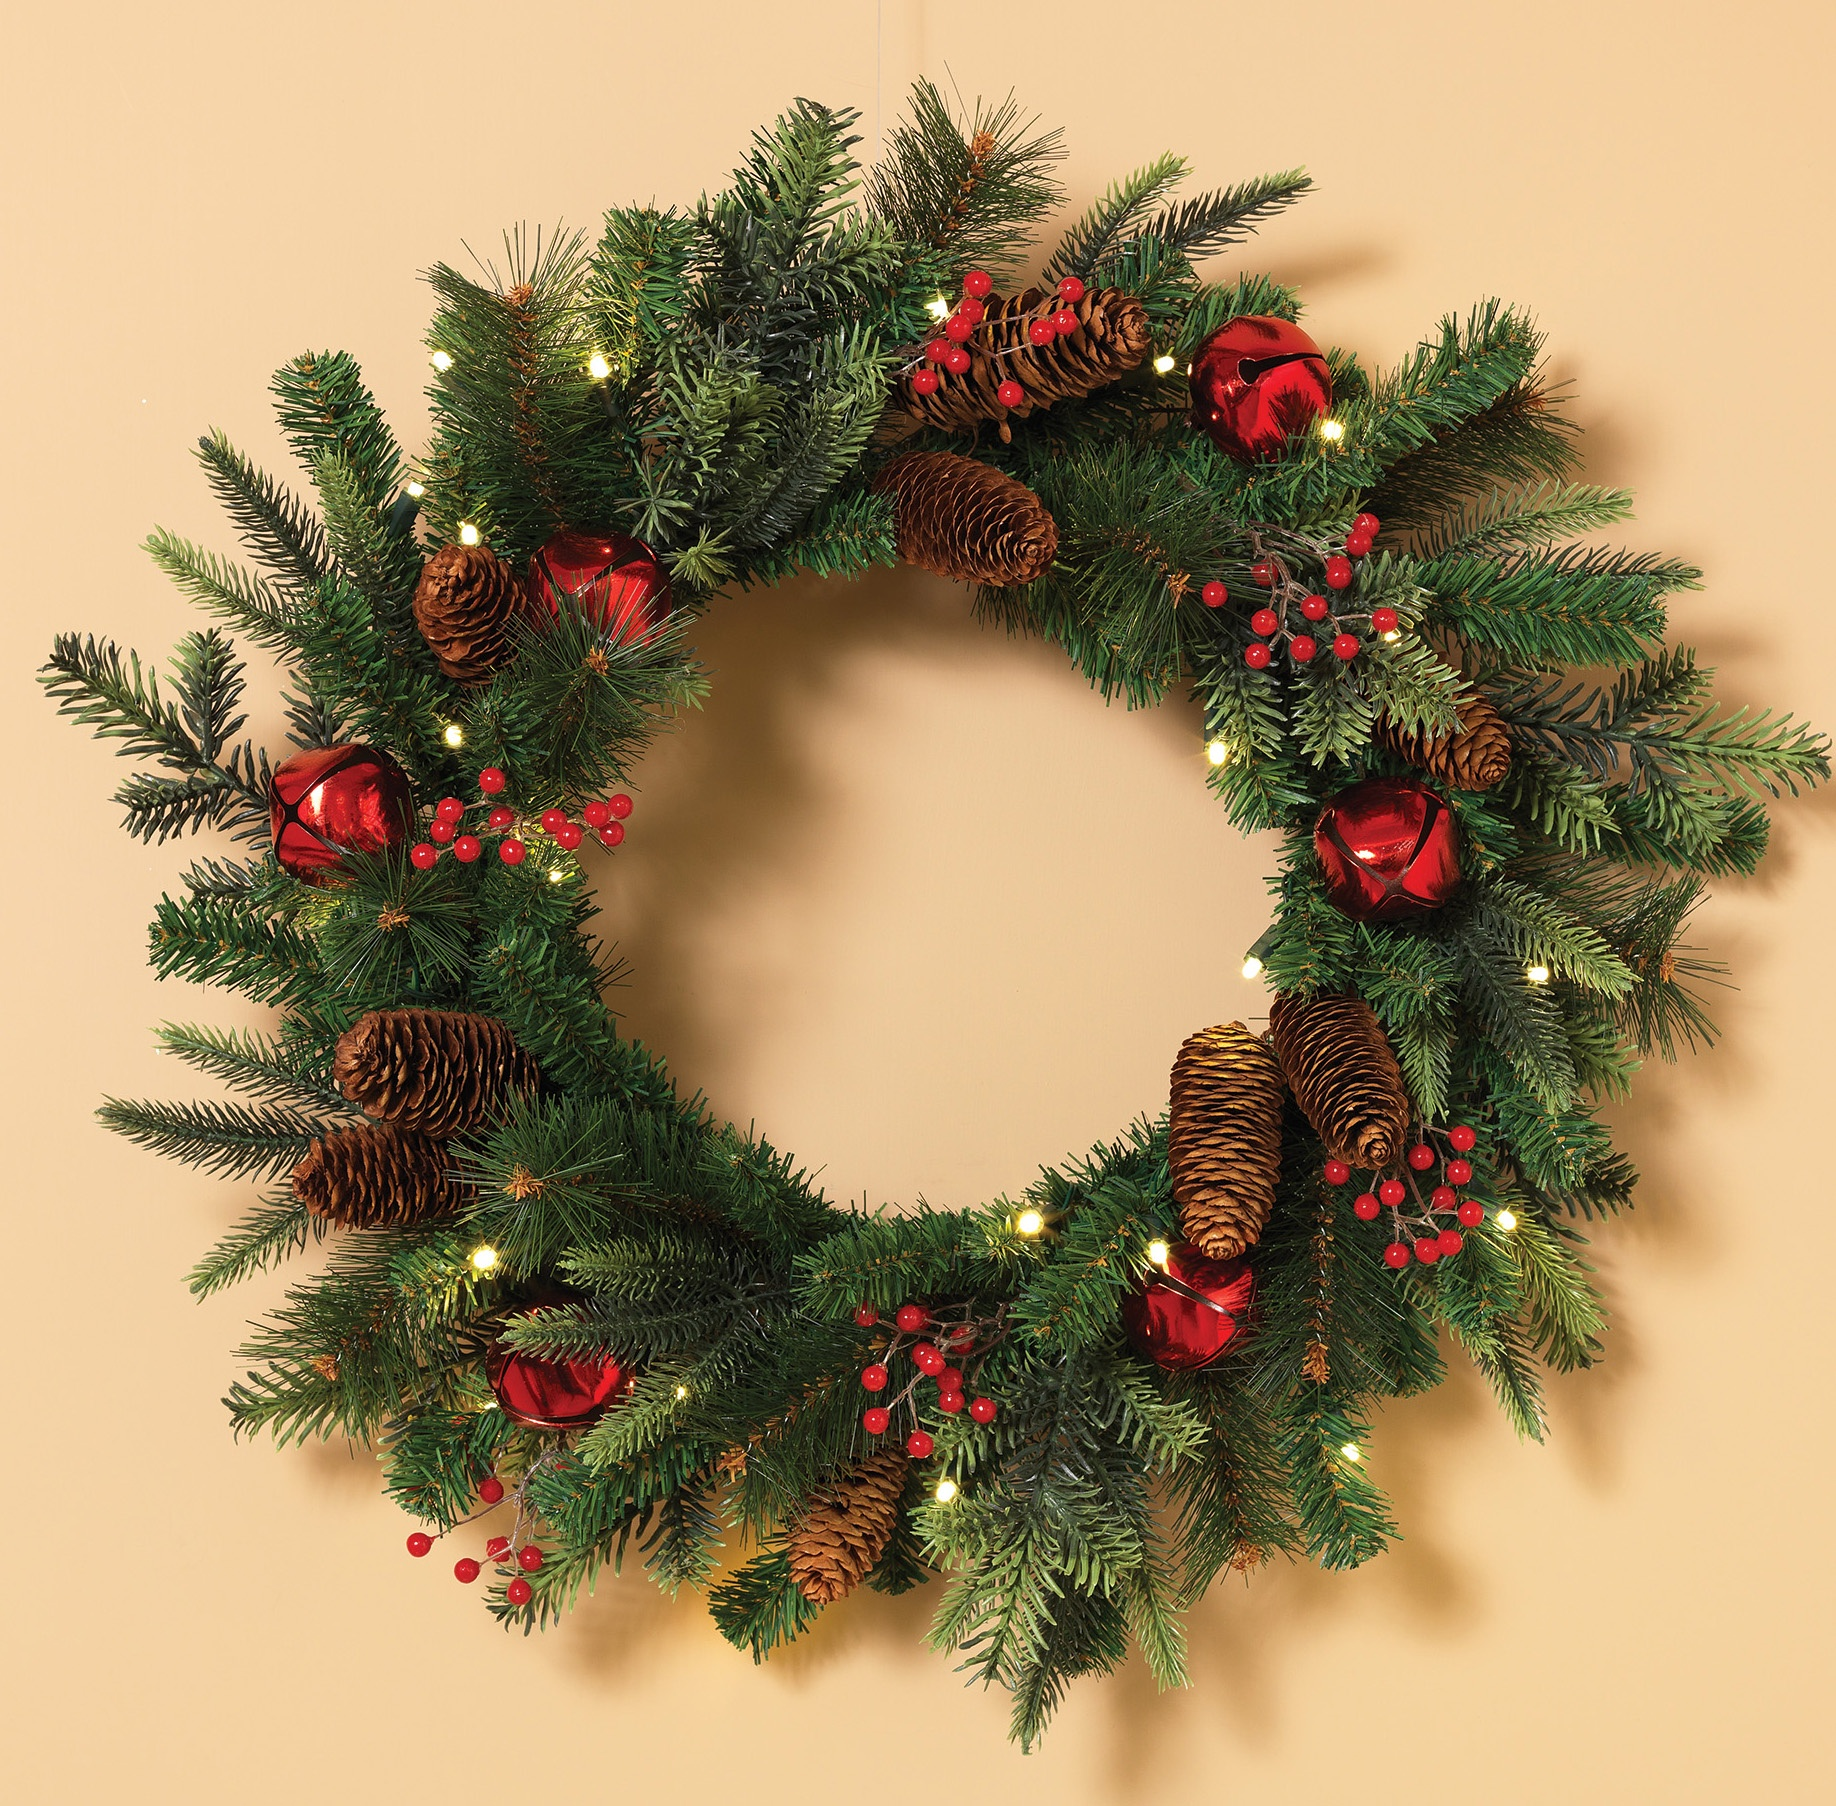 Decorative Wreaths Bells And Holly Prelit Led Holiday